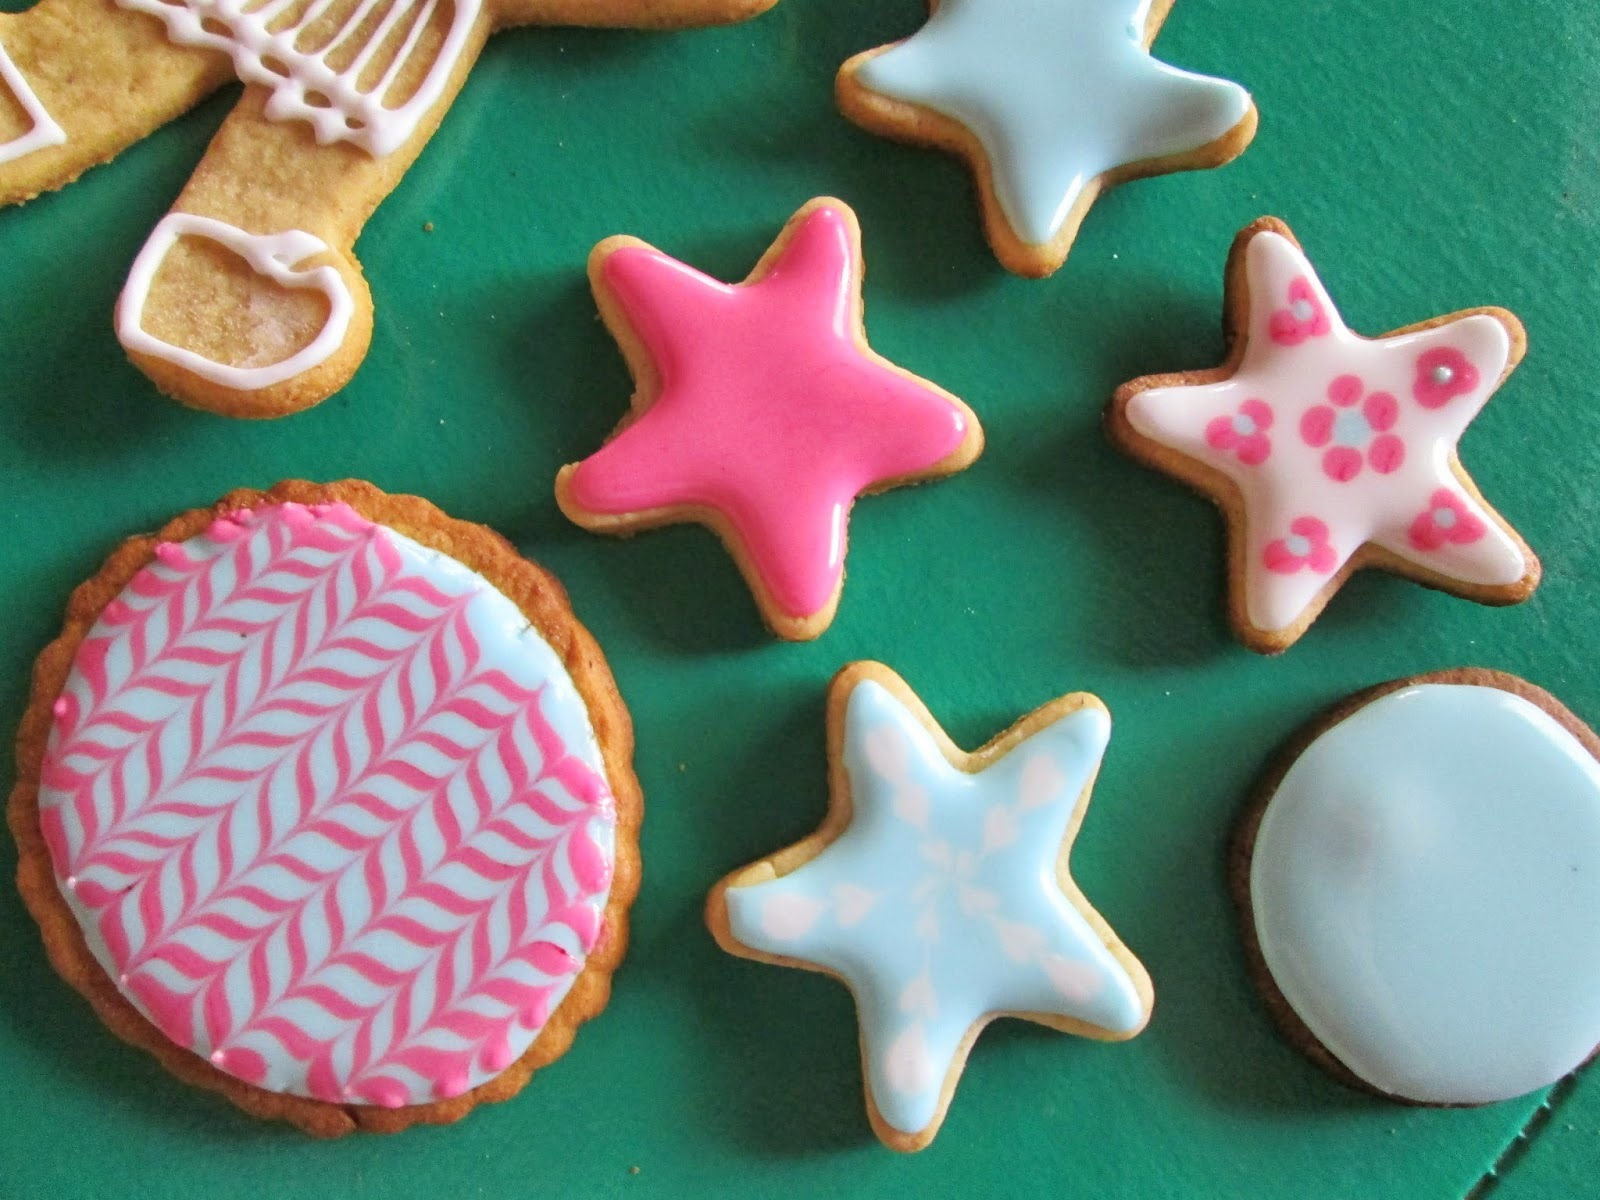 Galletitas decoradas con fondant y glaseado